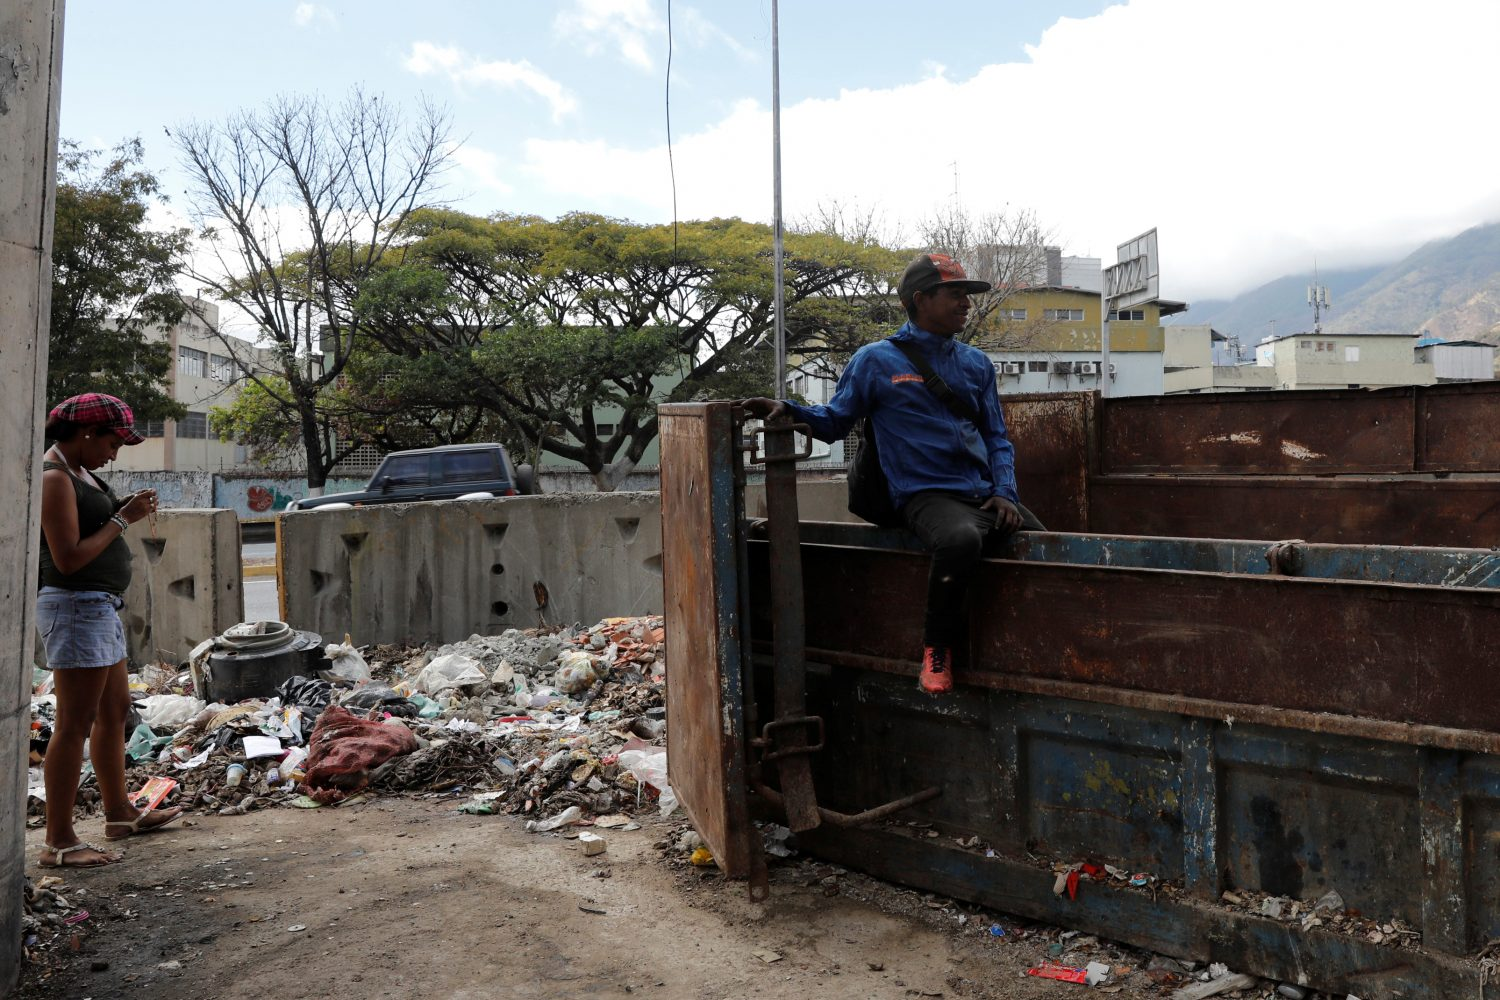 A man sits on a rubbish container in Caracas, Venezuela February 26, 2019. Picture taken February 26, 2019. REUTERS/Carlos Jasso